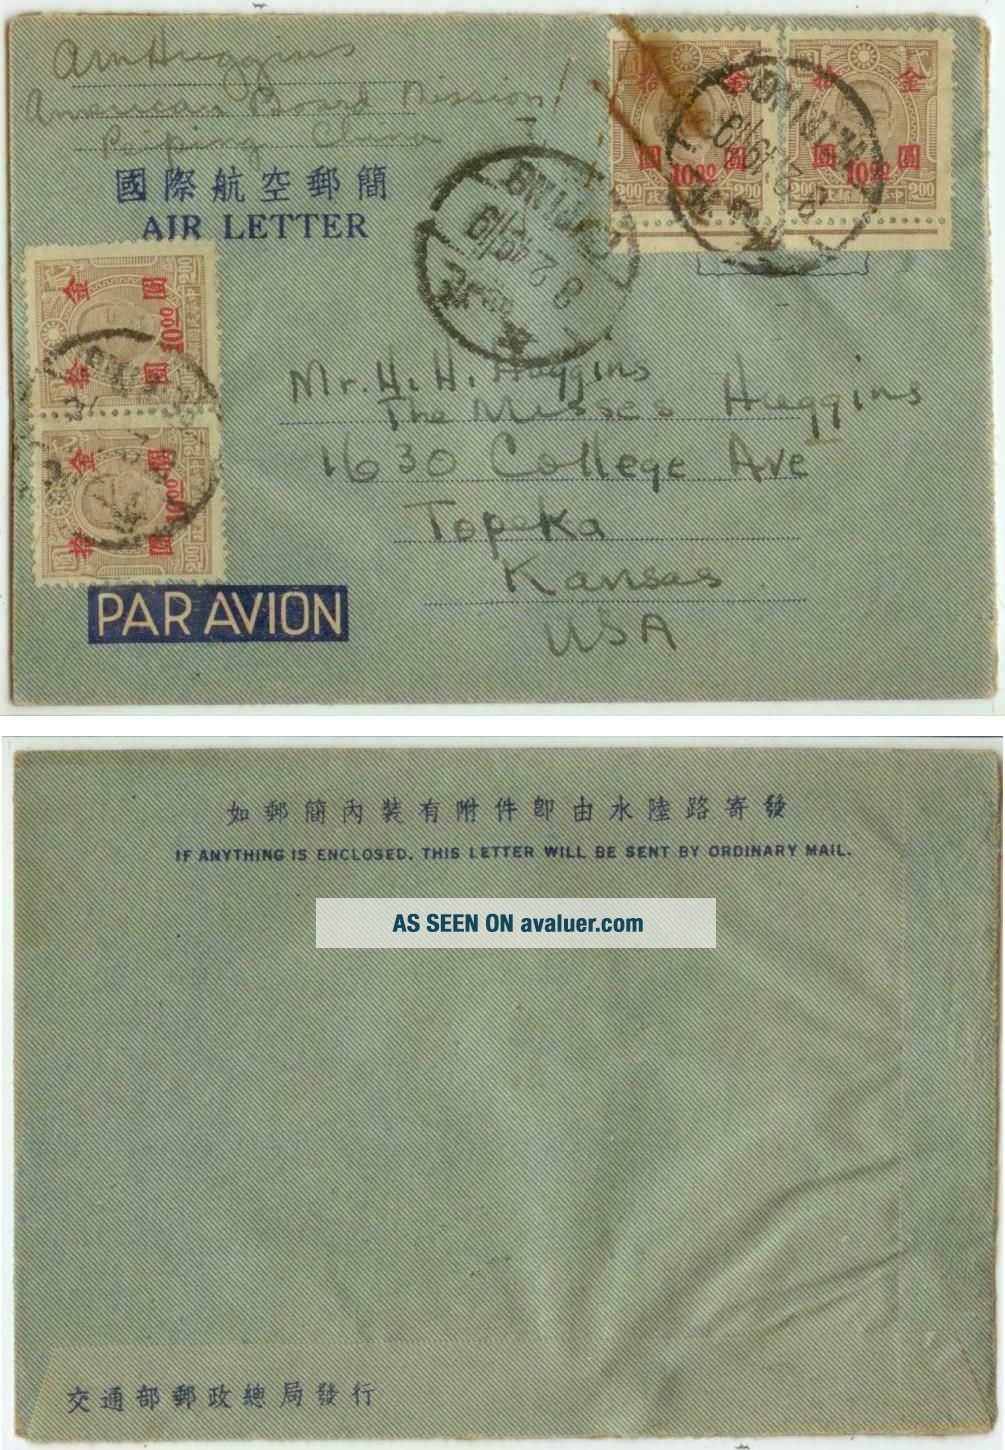 Feb 2 1949 Peiping China inflation Air Letter cover - Alice Huggins missionary